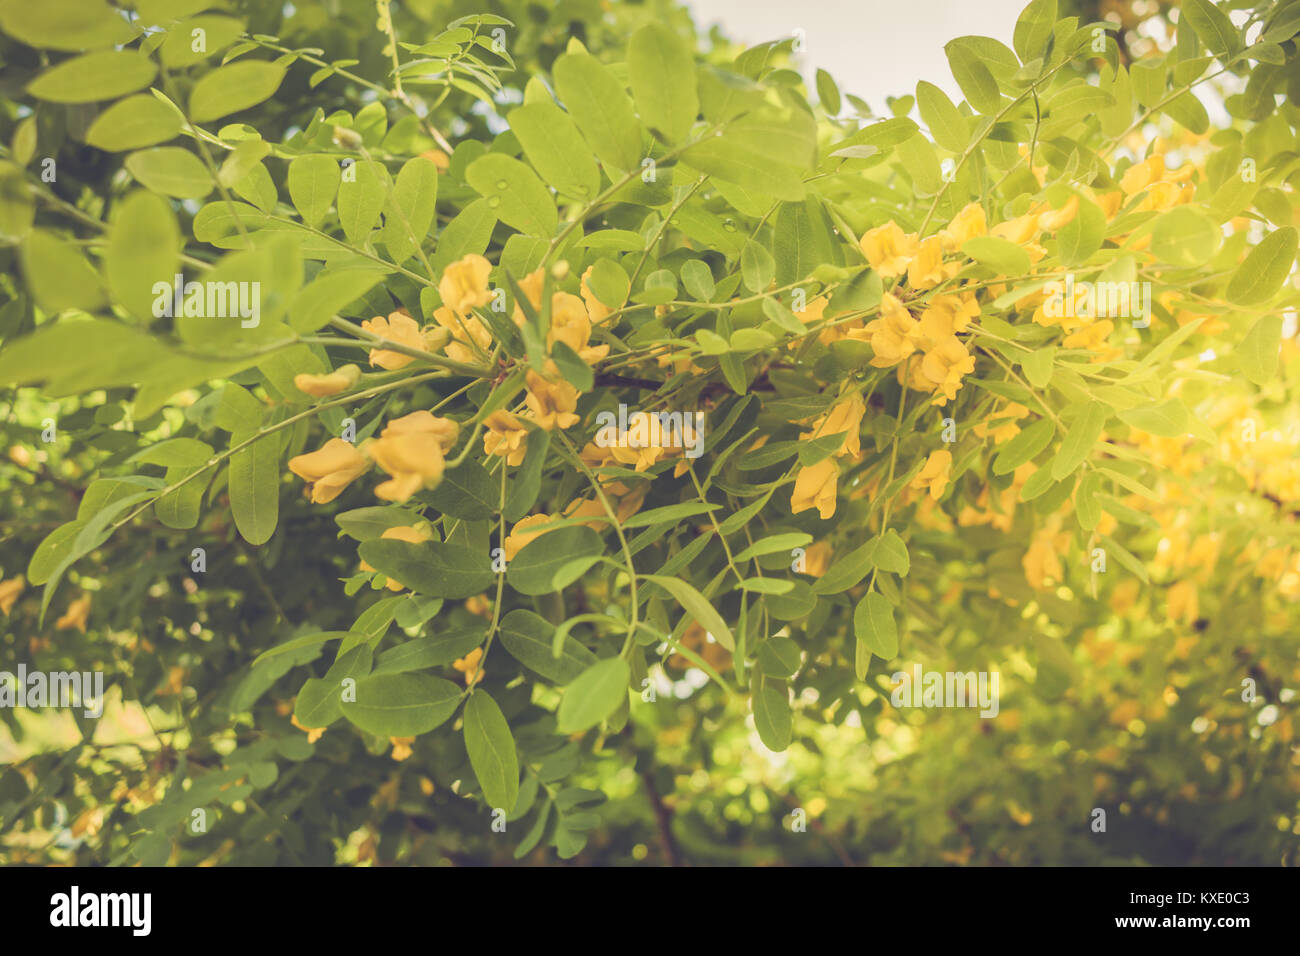 Spring Background With Soft Focus Blooming Green Acacia Tree With